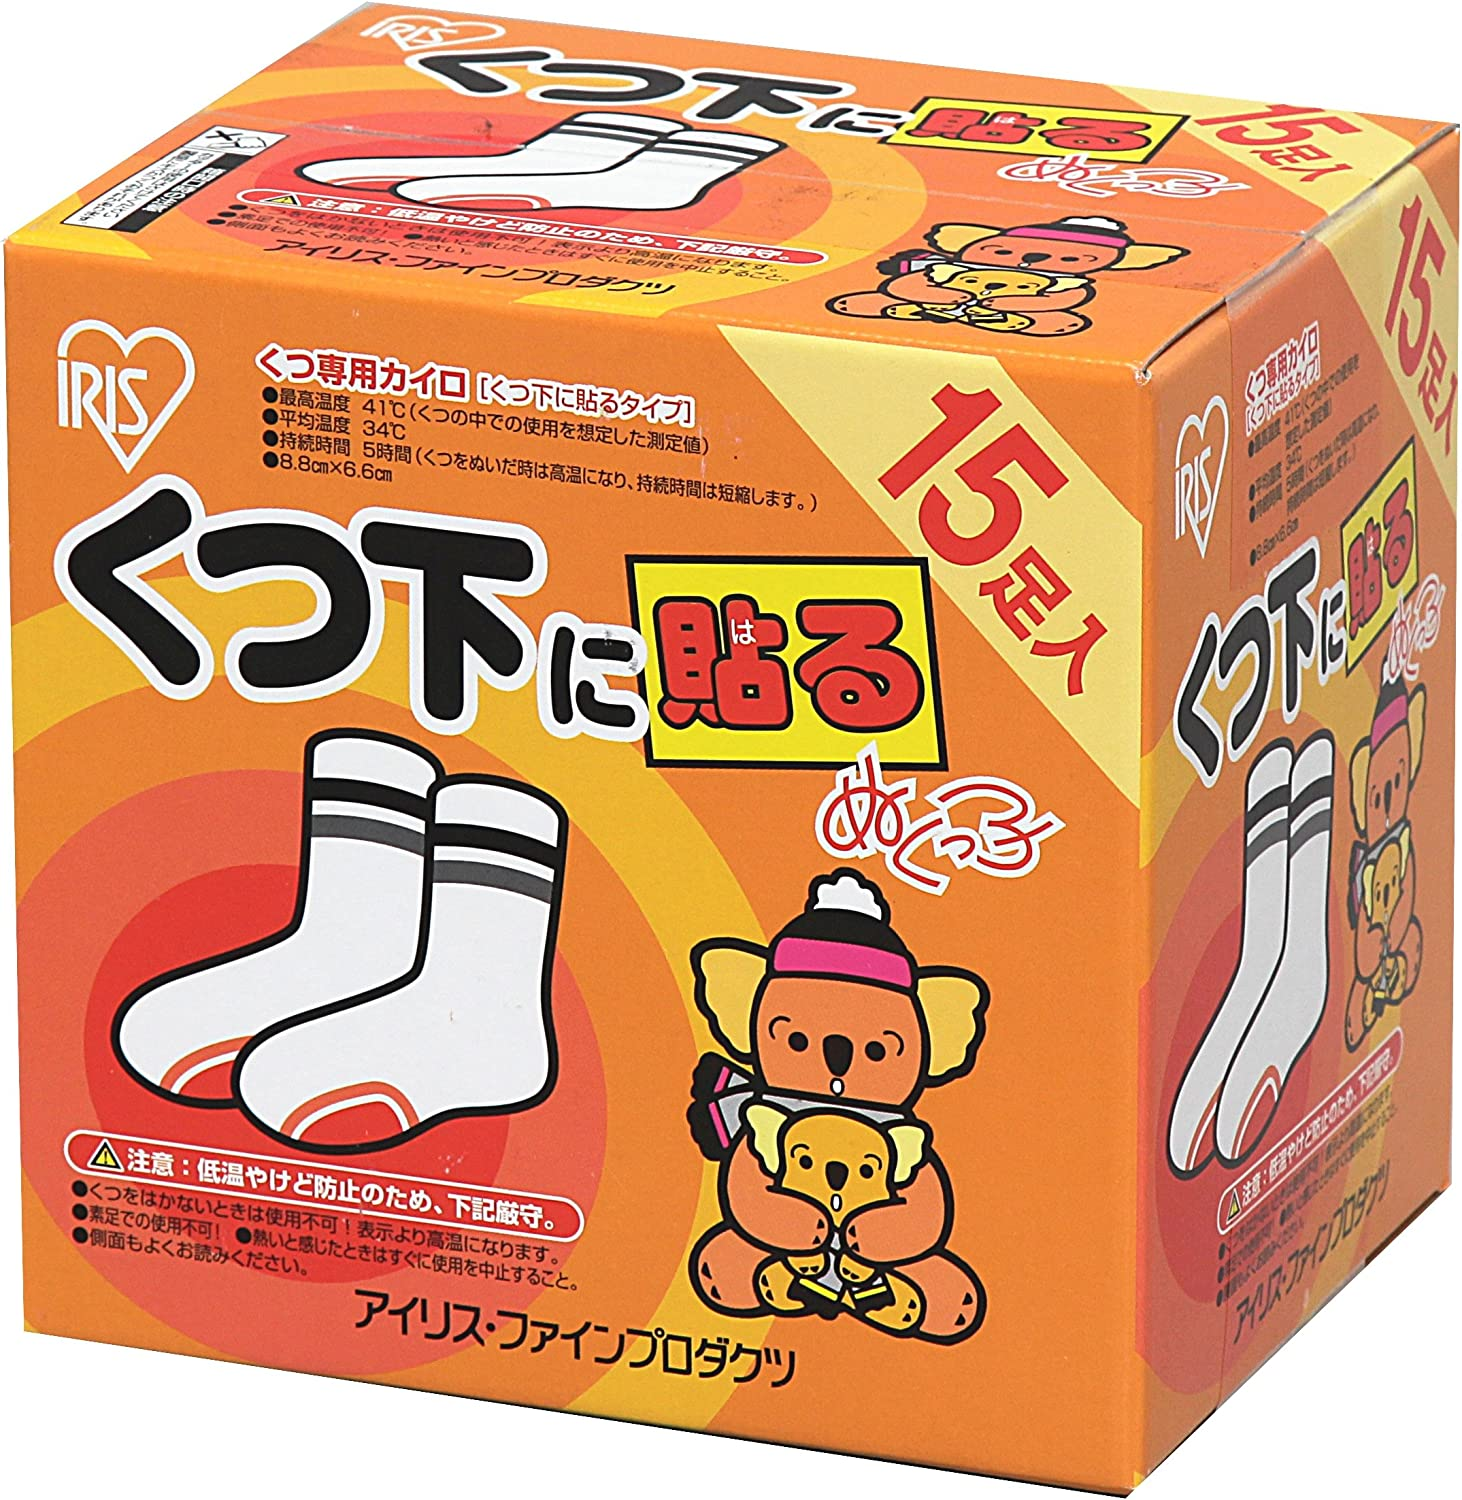 15 NUKUKKO type tentative marriage on to put Limited time trial price New life the socks